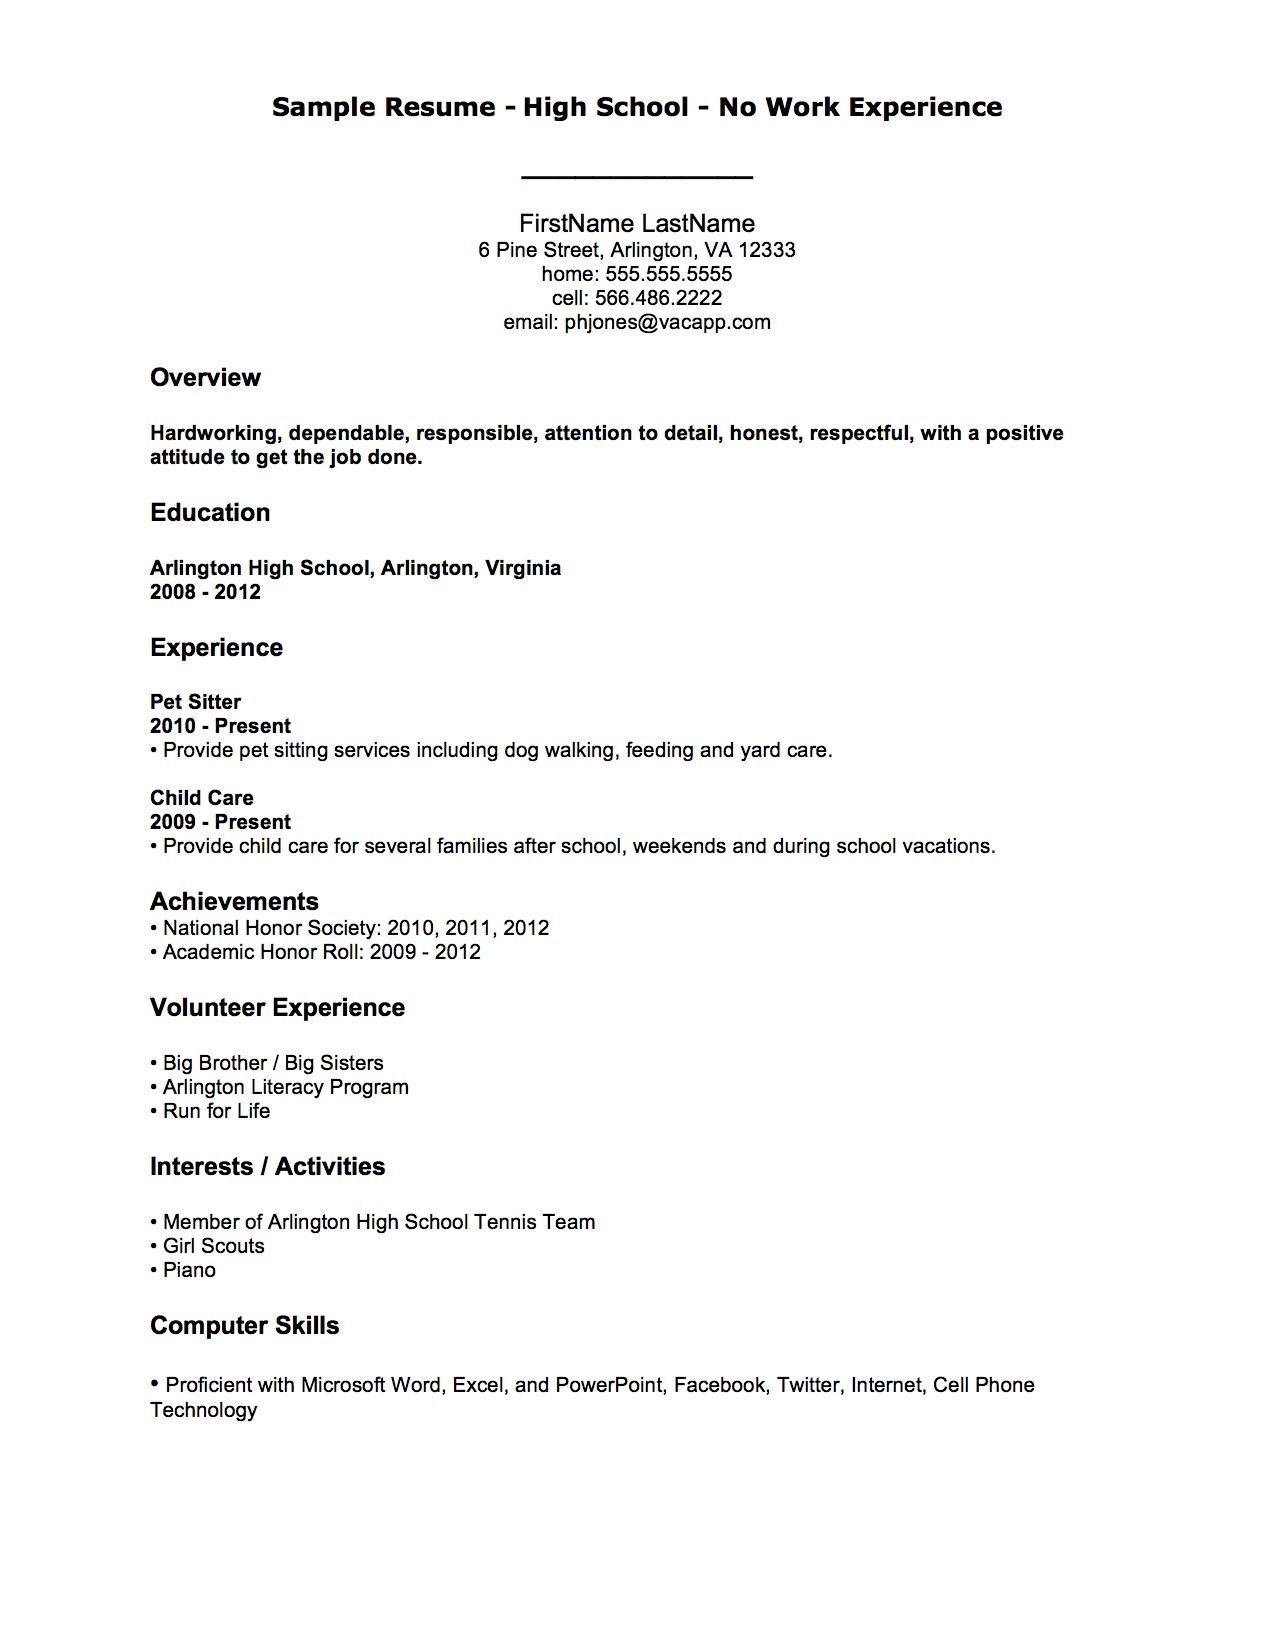 Resume Examples With No Job Experience 1Resume Examples